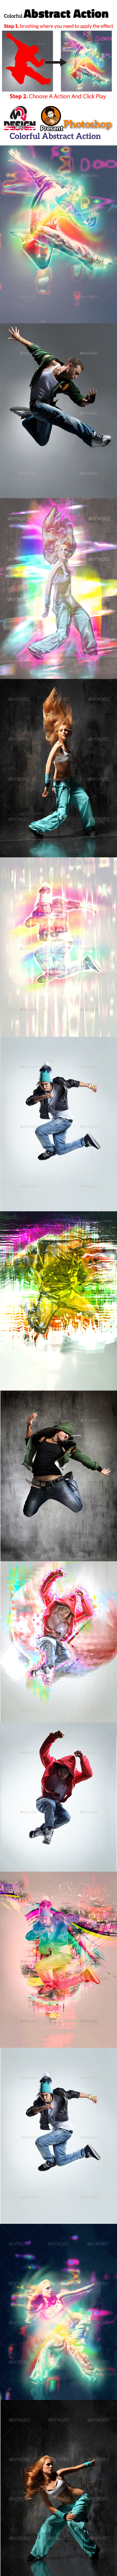 Colorful Abstract Action - Actions Photoshop